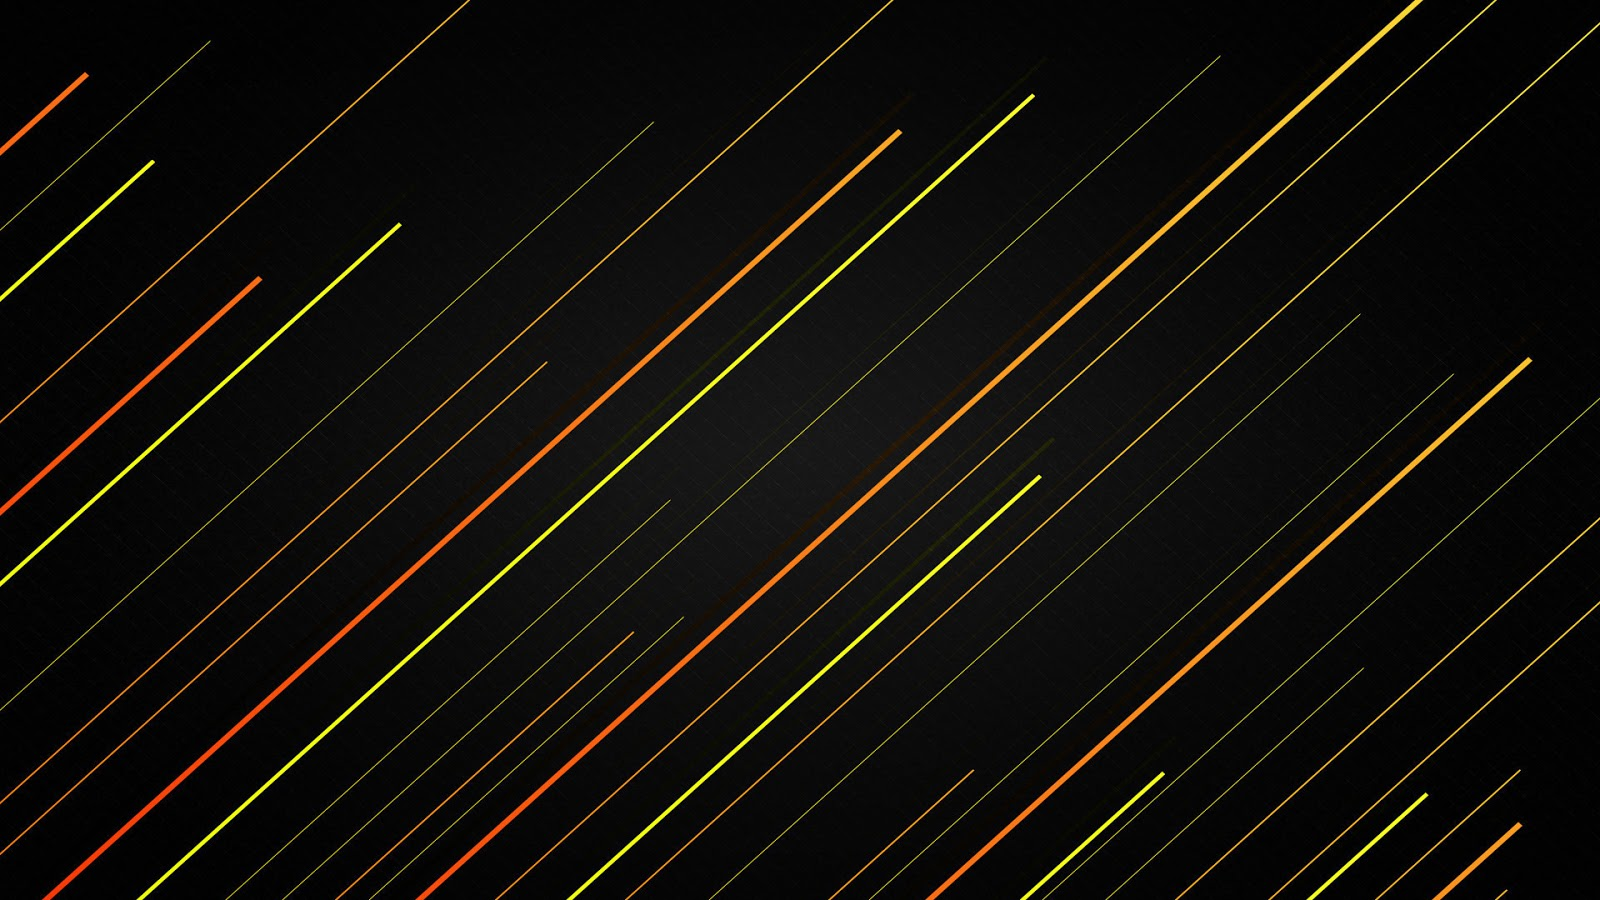 Black and Colored Wallpapers